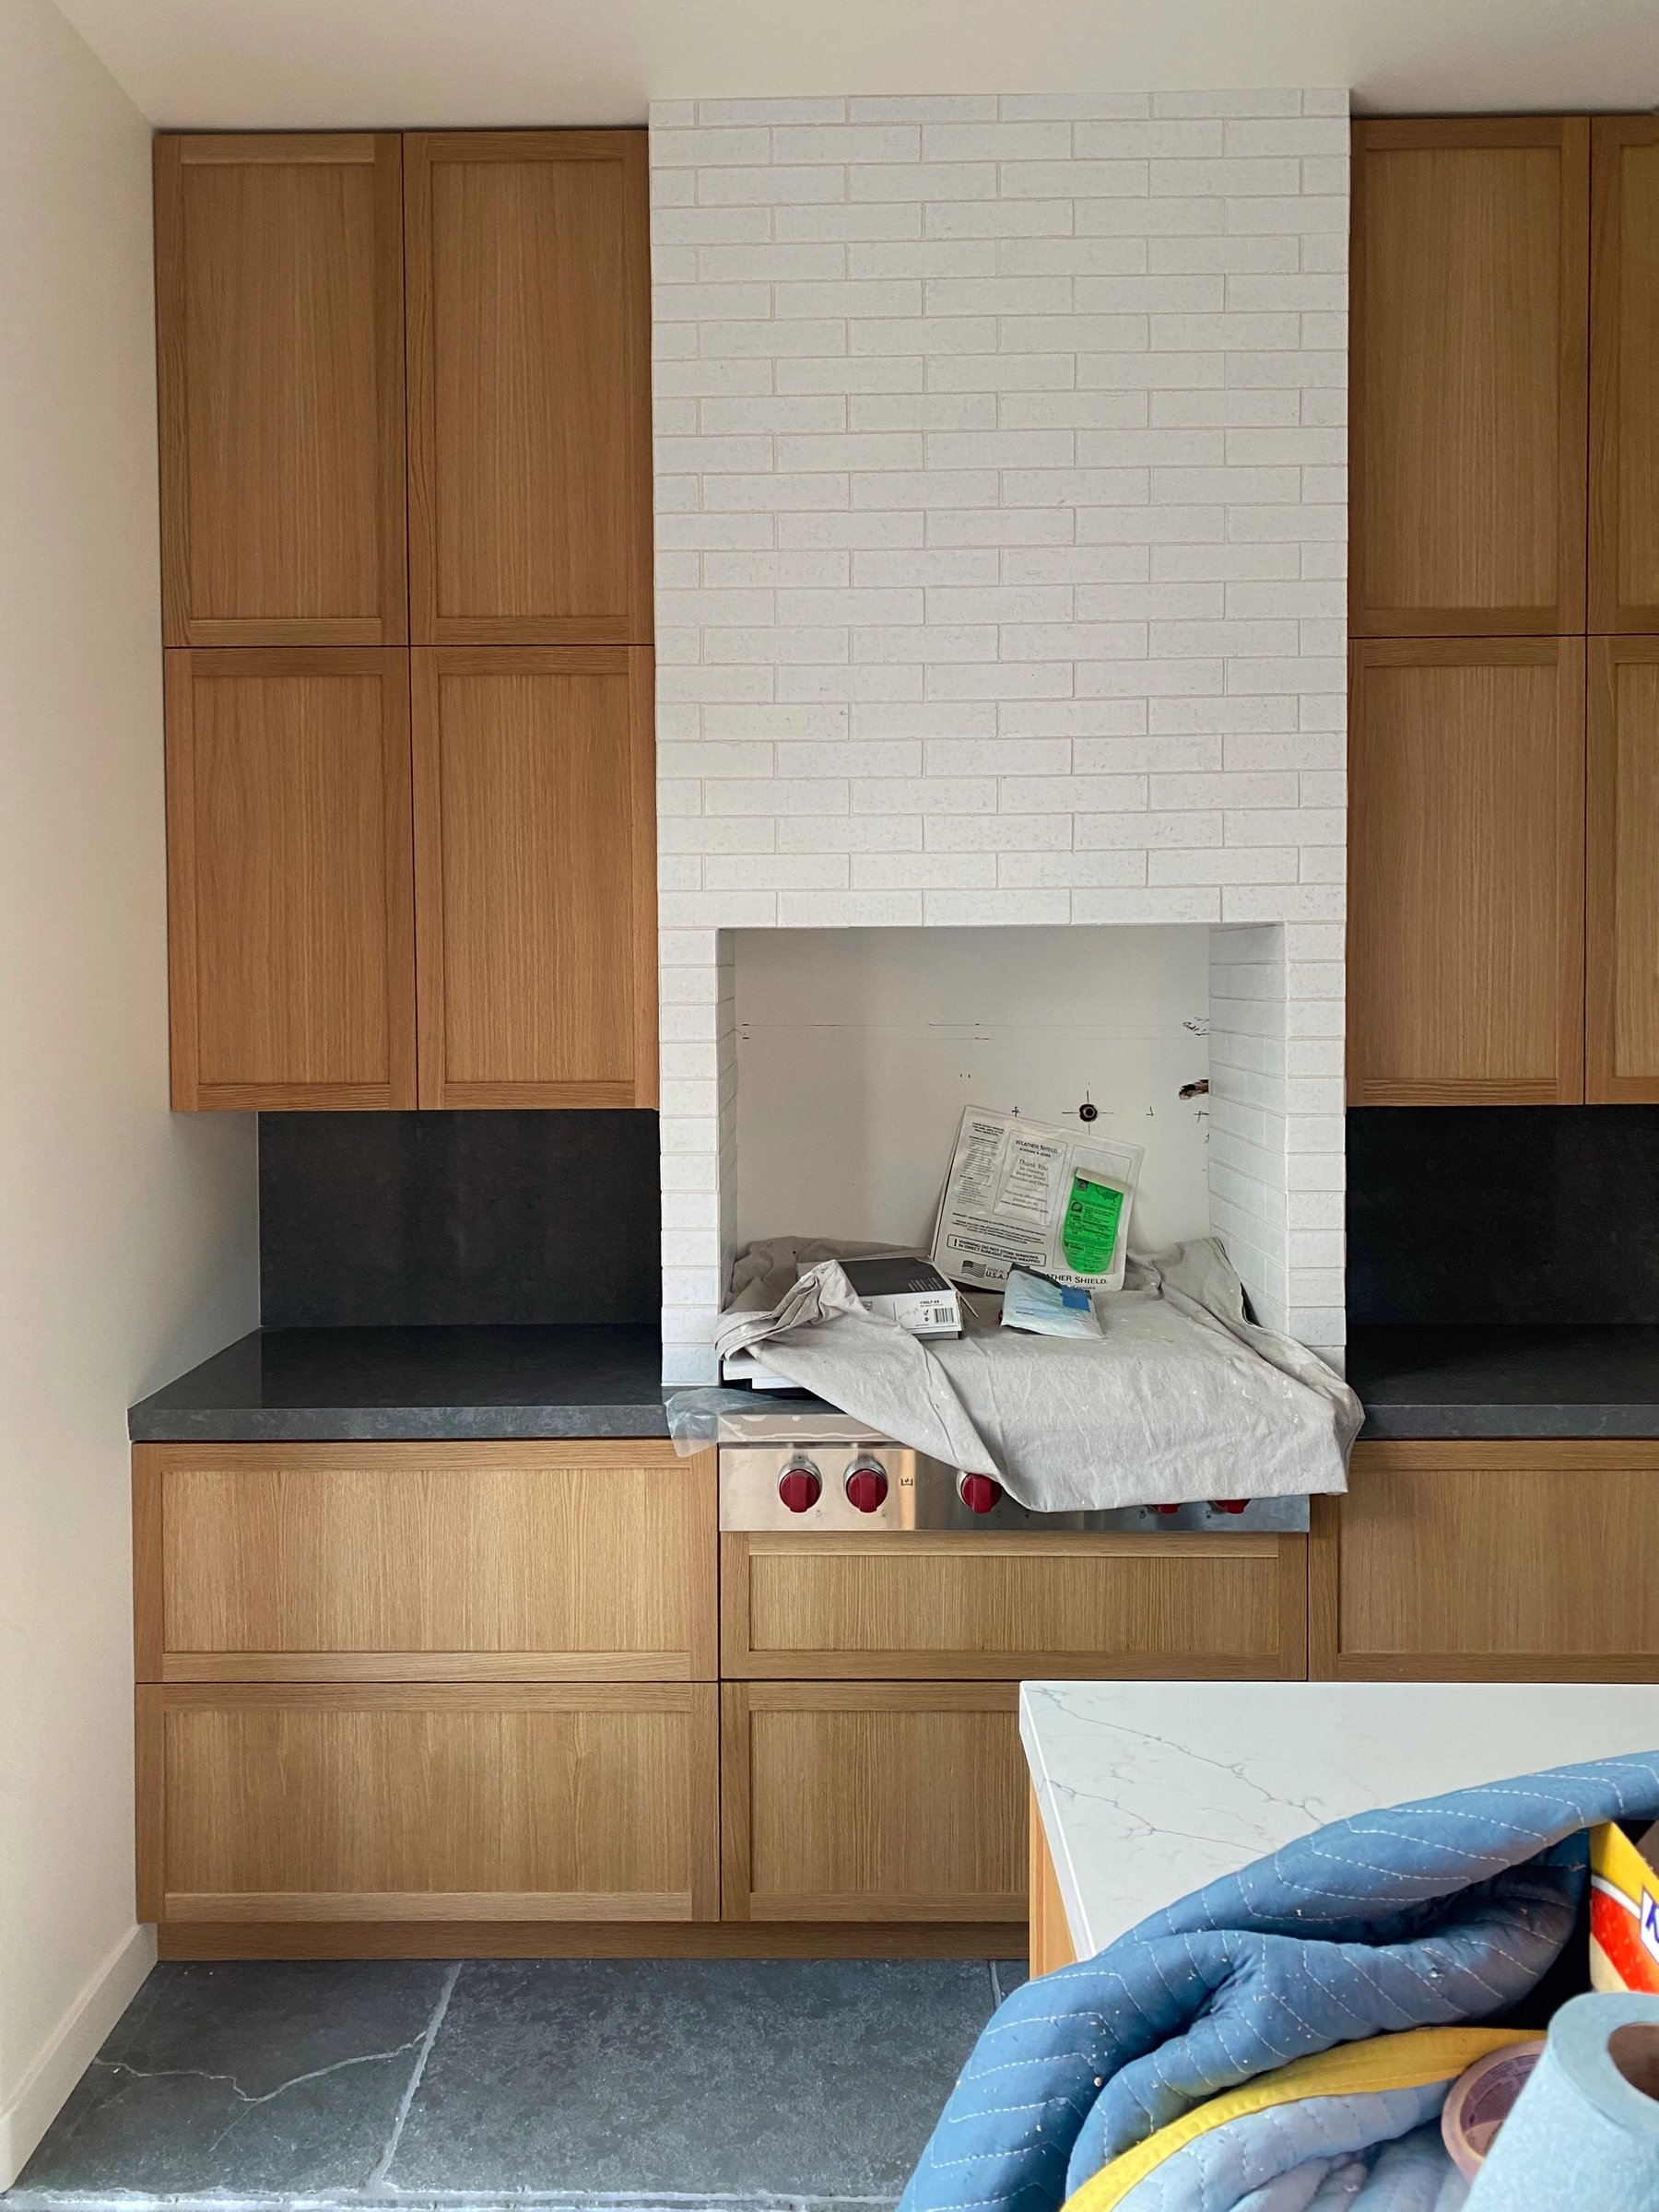 A built in range and hood clad in brick